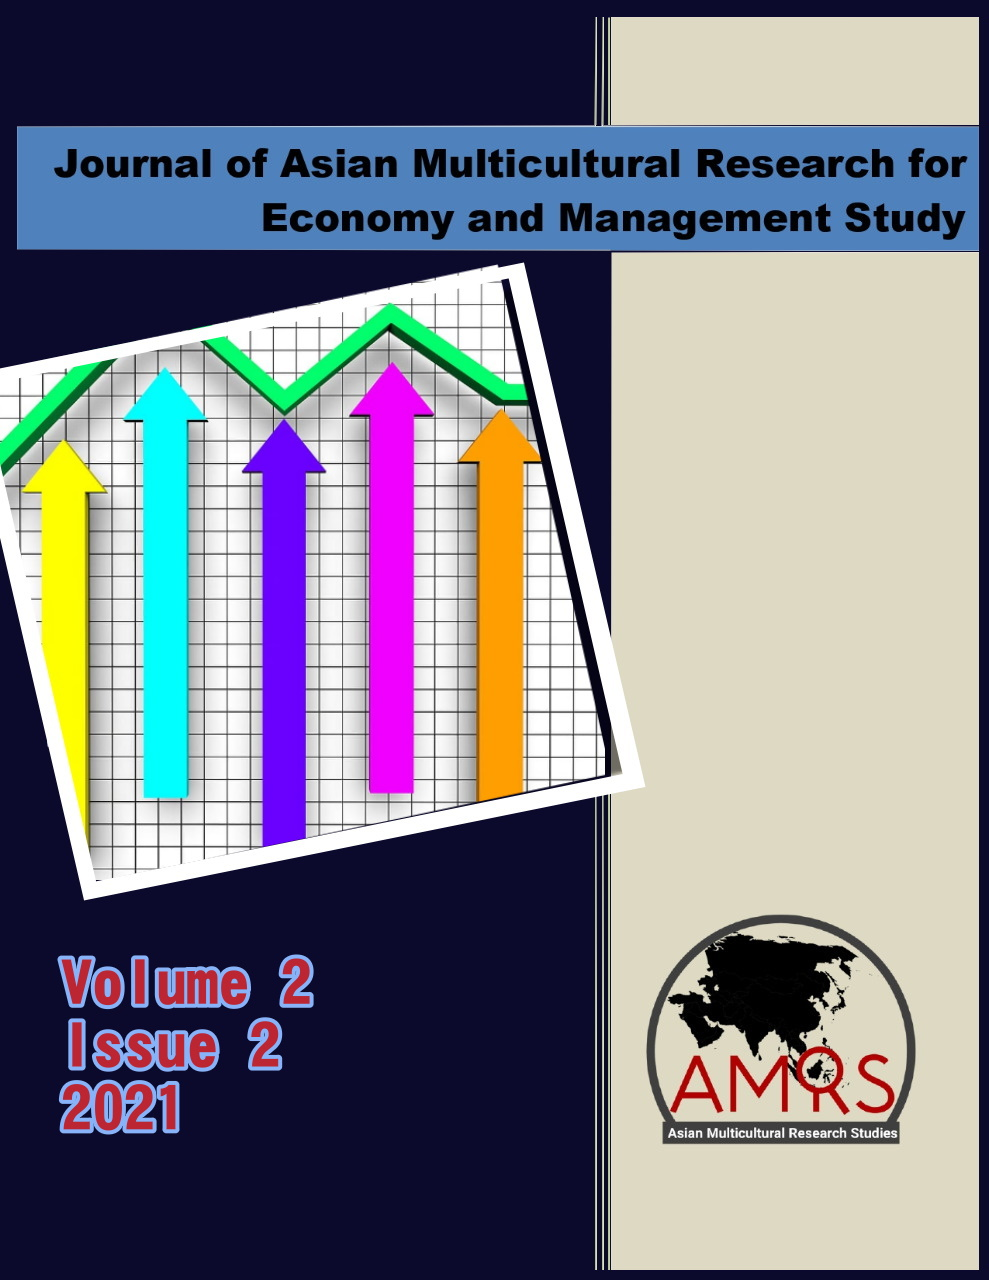 View Vol. 2 No. 2 (2021): Journal of Asian Multicultural Research for Economy and Management Study